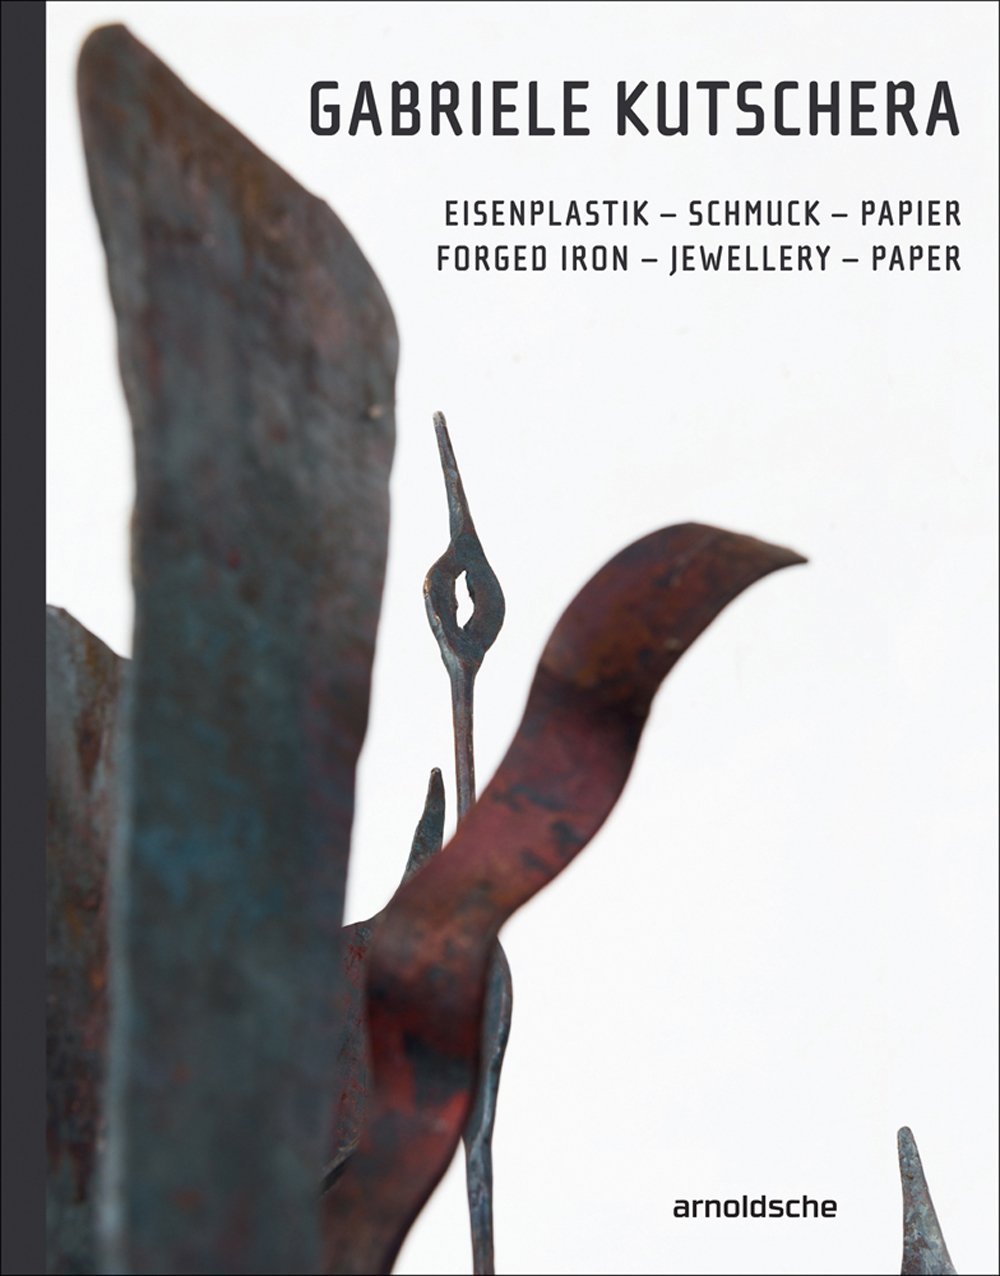 Gabriele Kutschera: Forged Iron - Jewellery - Paper (English and German Edition) pdf